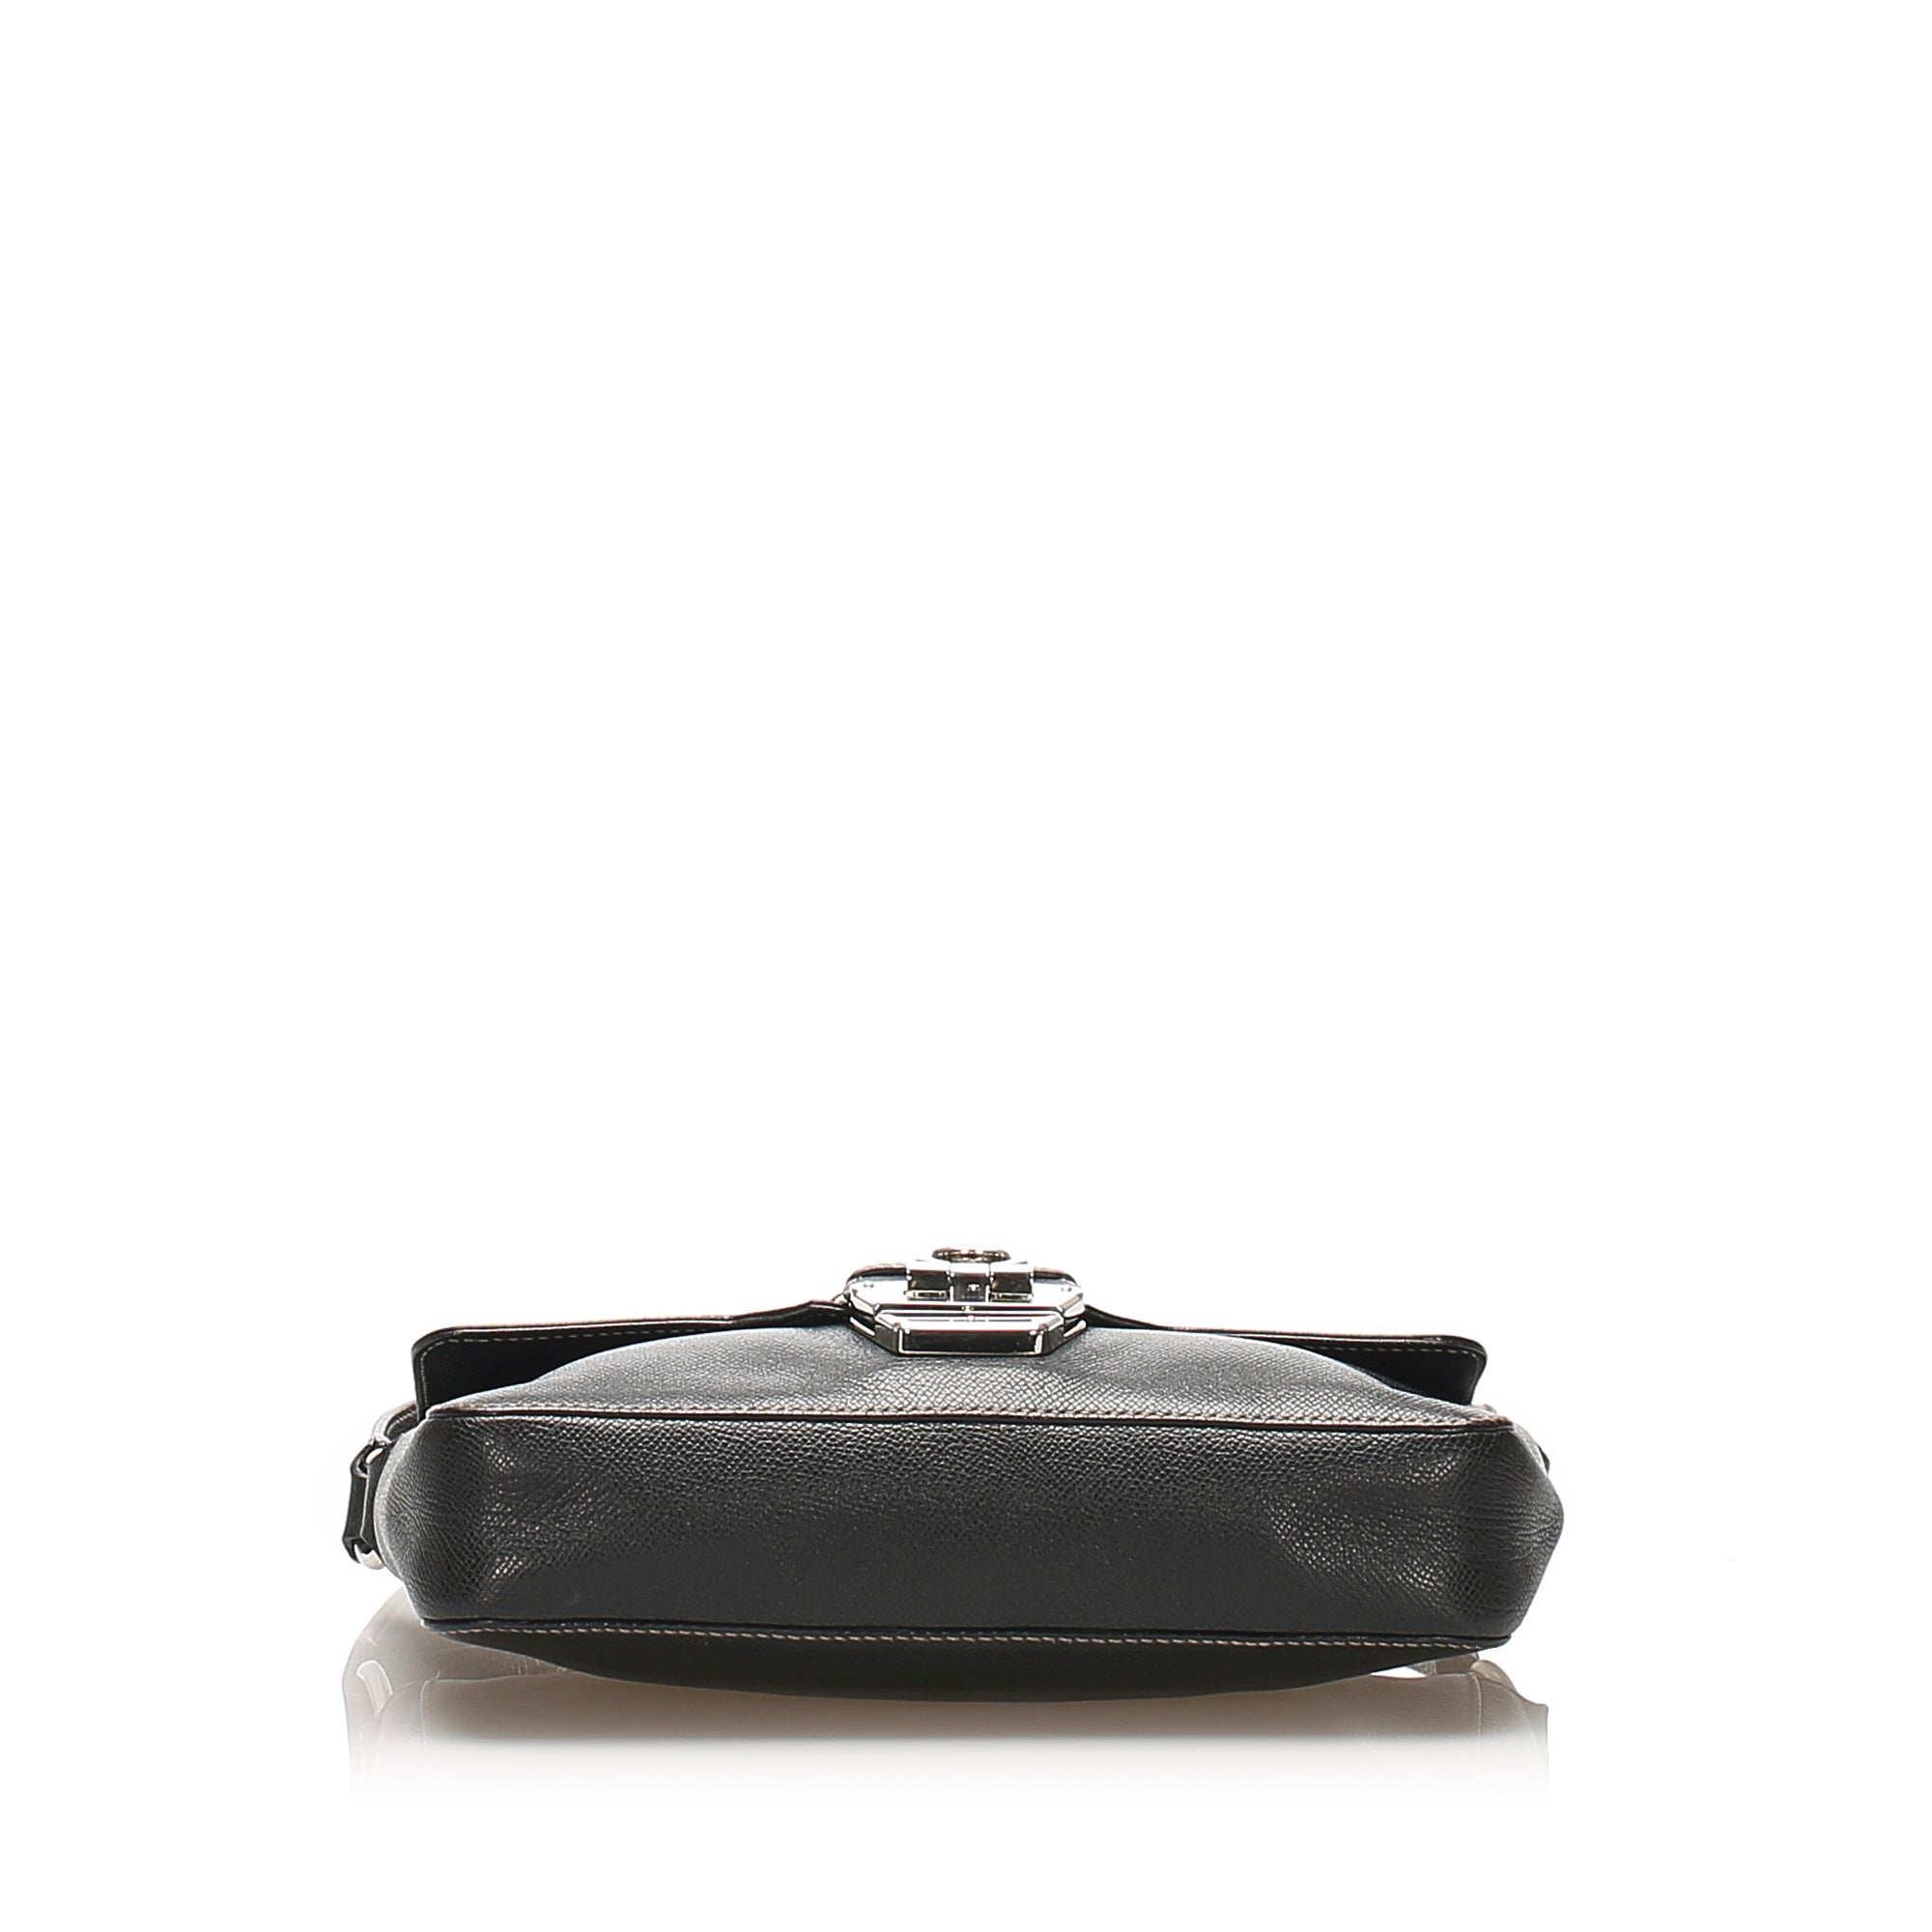 Ferragamo Black Gancini Leather Shoulder Bag